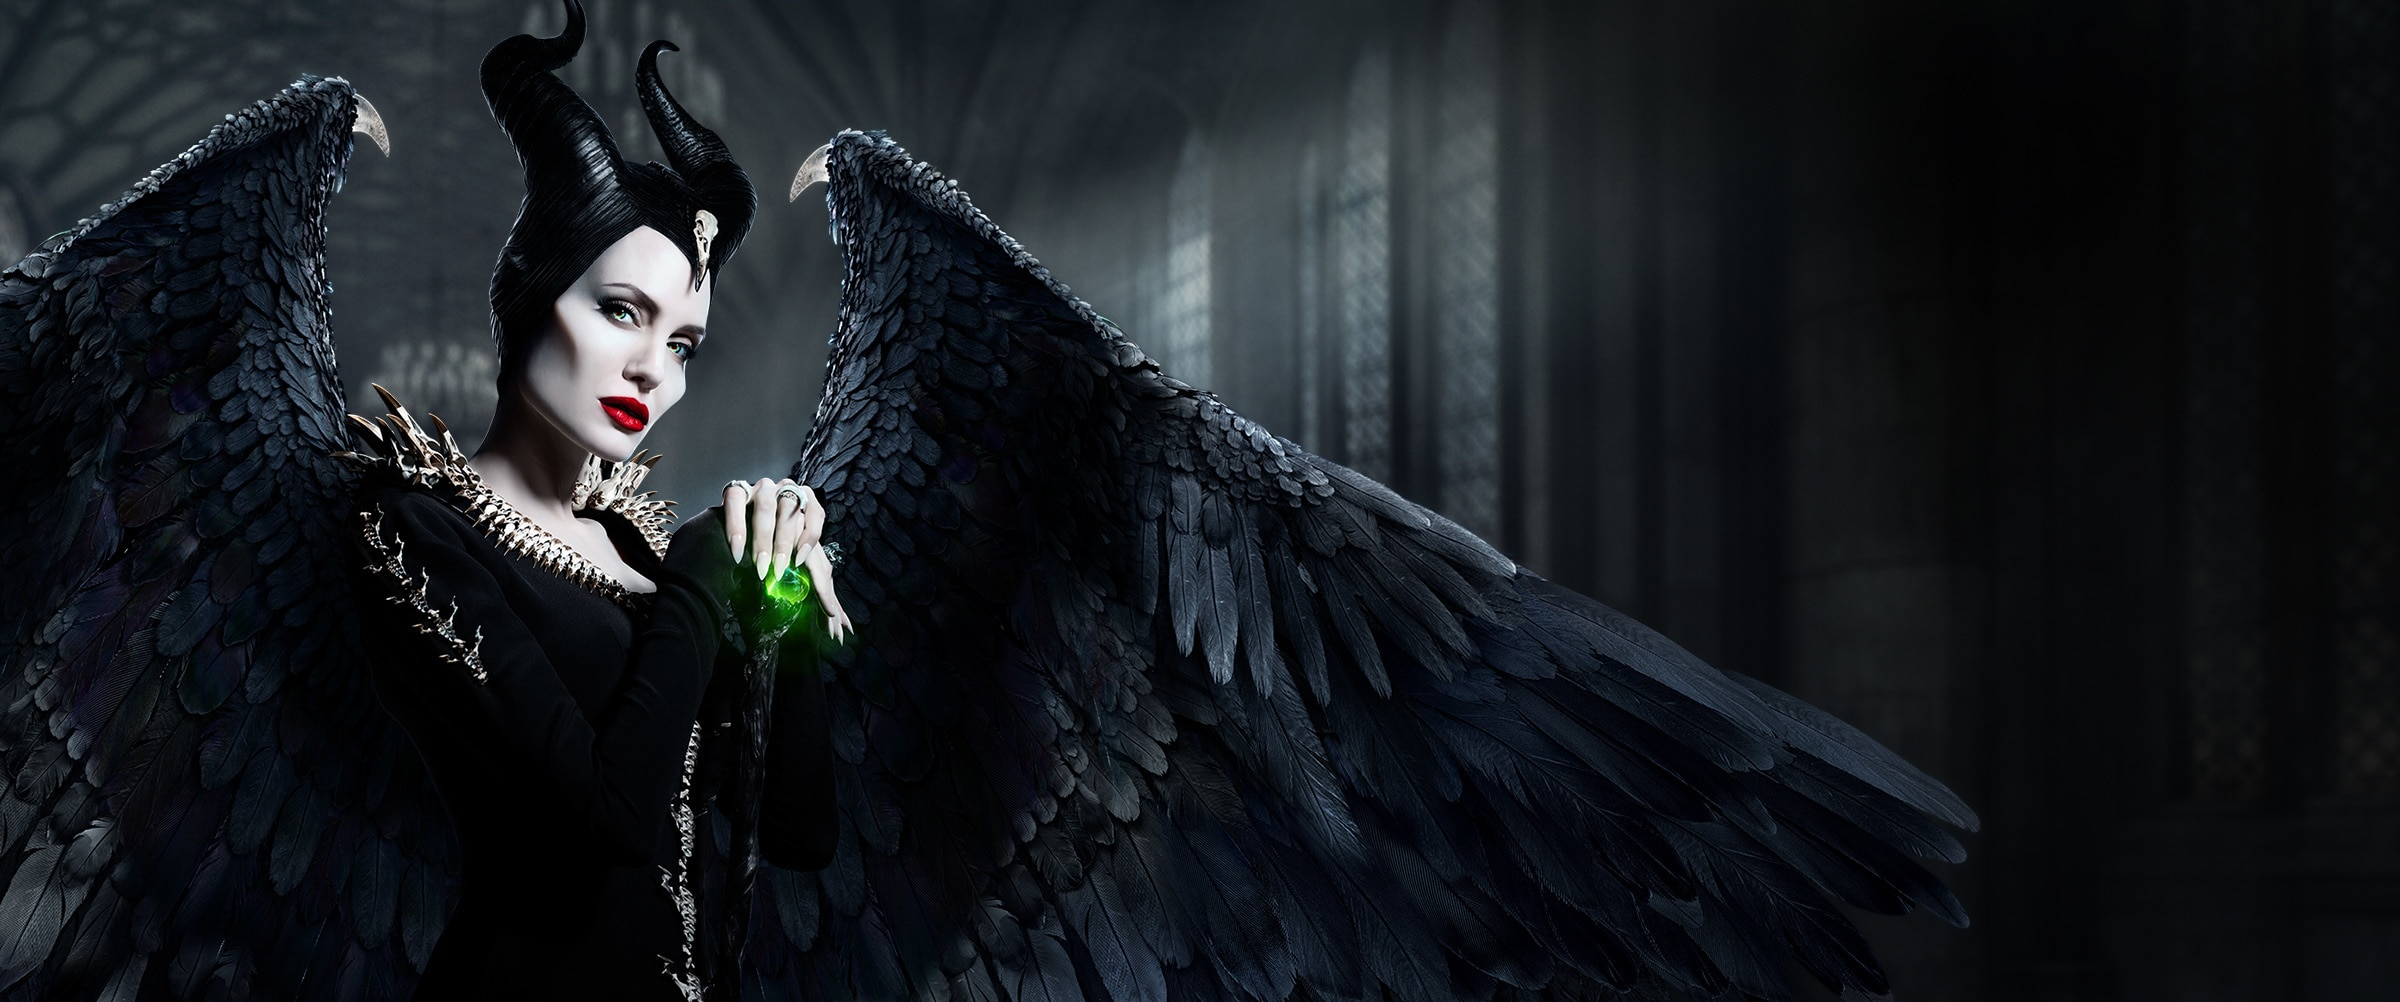 Maleficent: Mistress of Evil (2019) - Homepage Hero - Wings